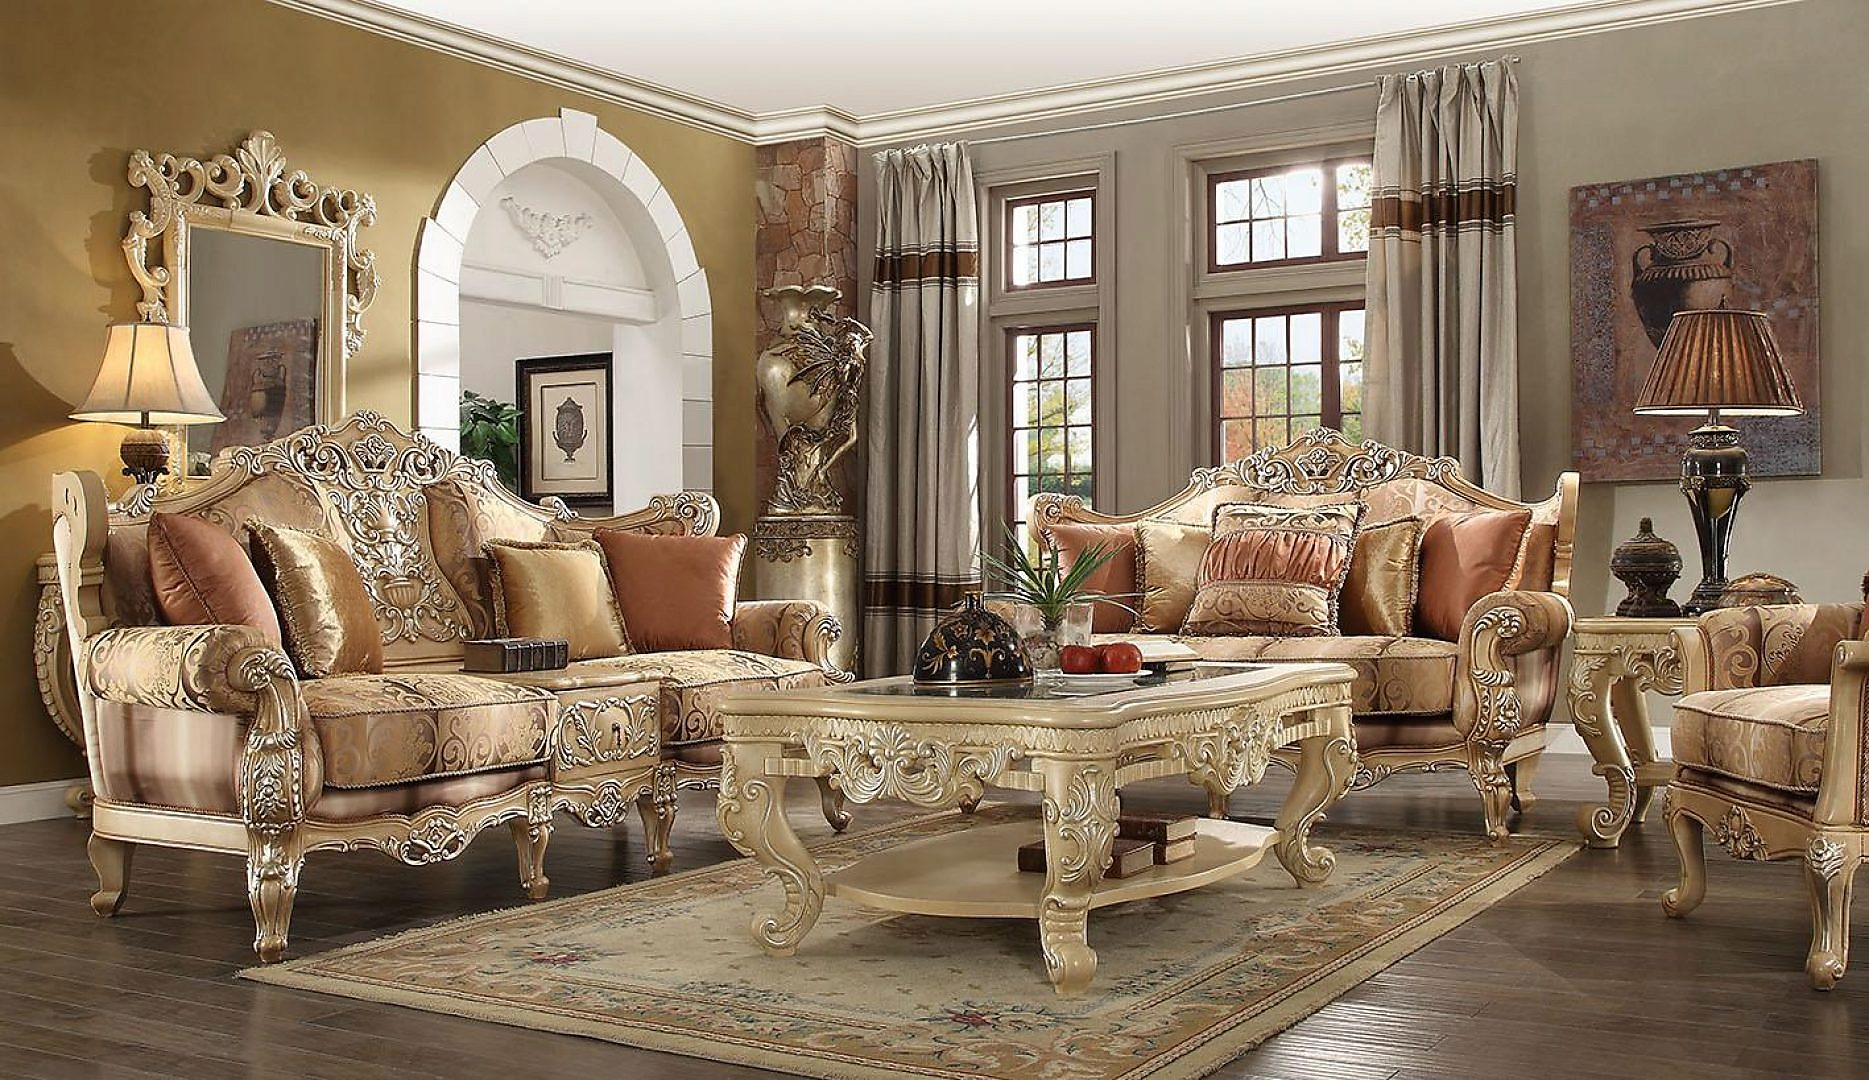 Traditional HD-1633 Sofa Loveseat and Chair Set 3Pcs by Homey Design